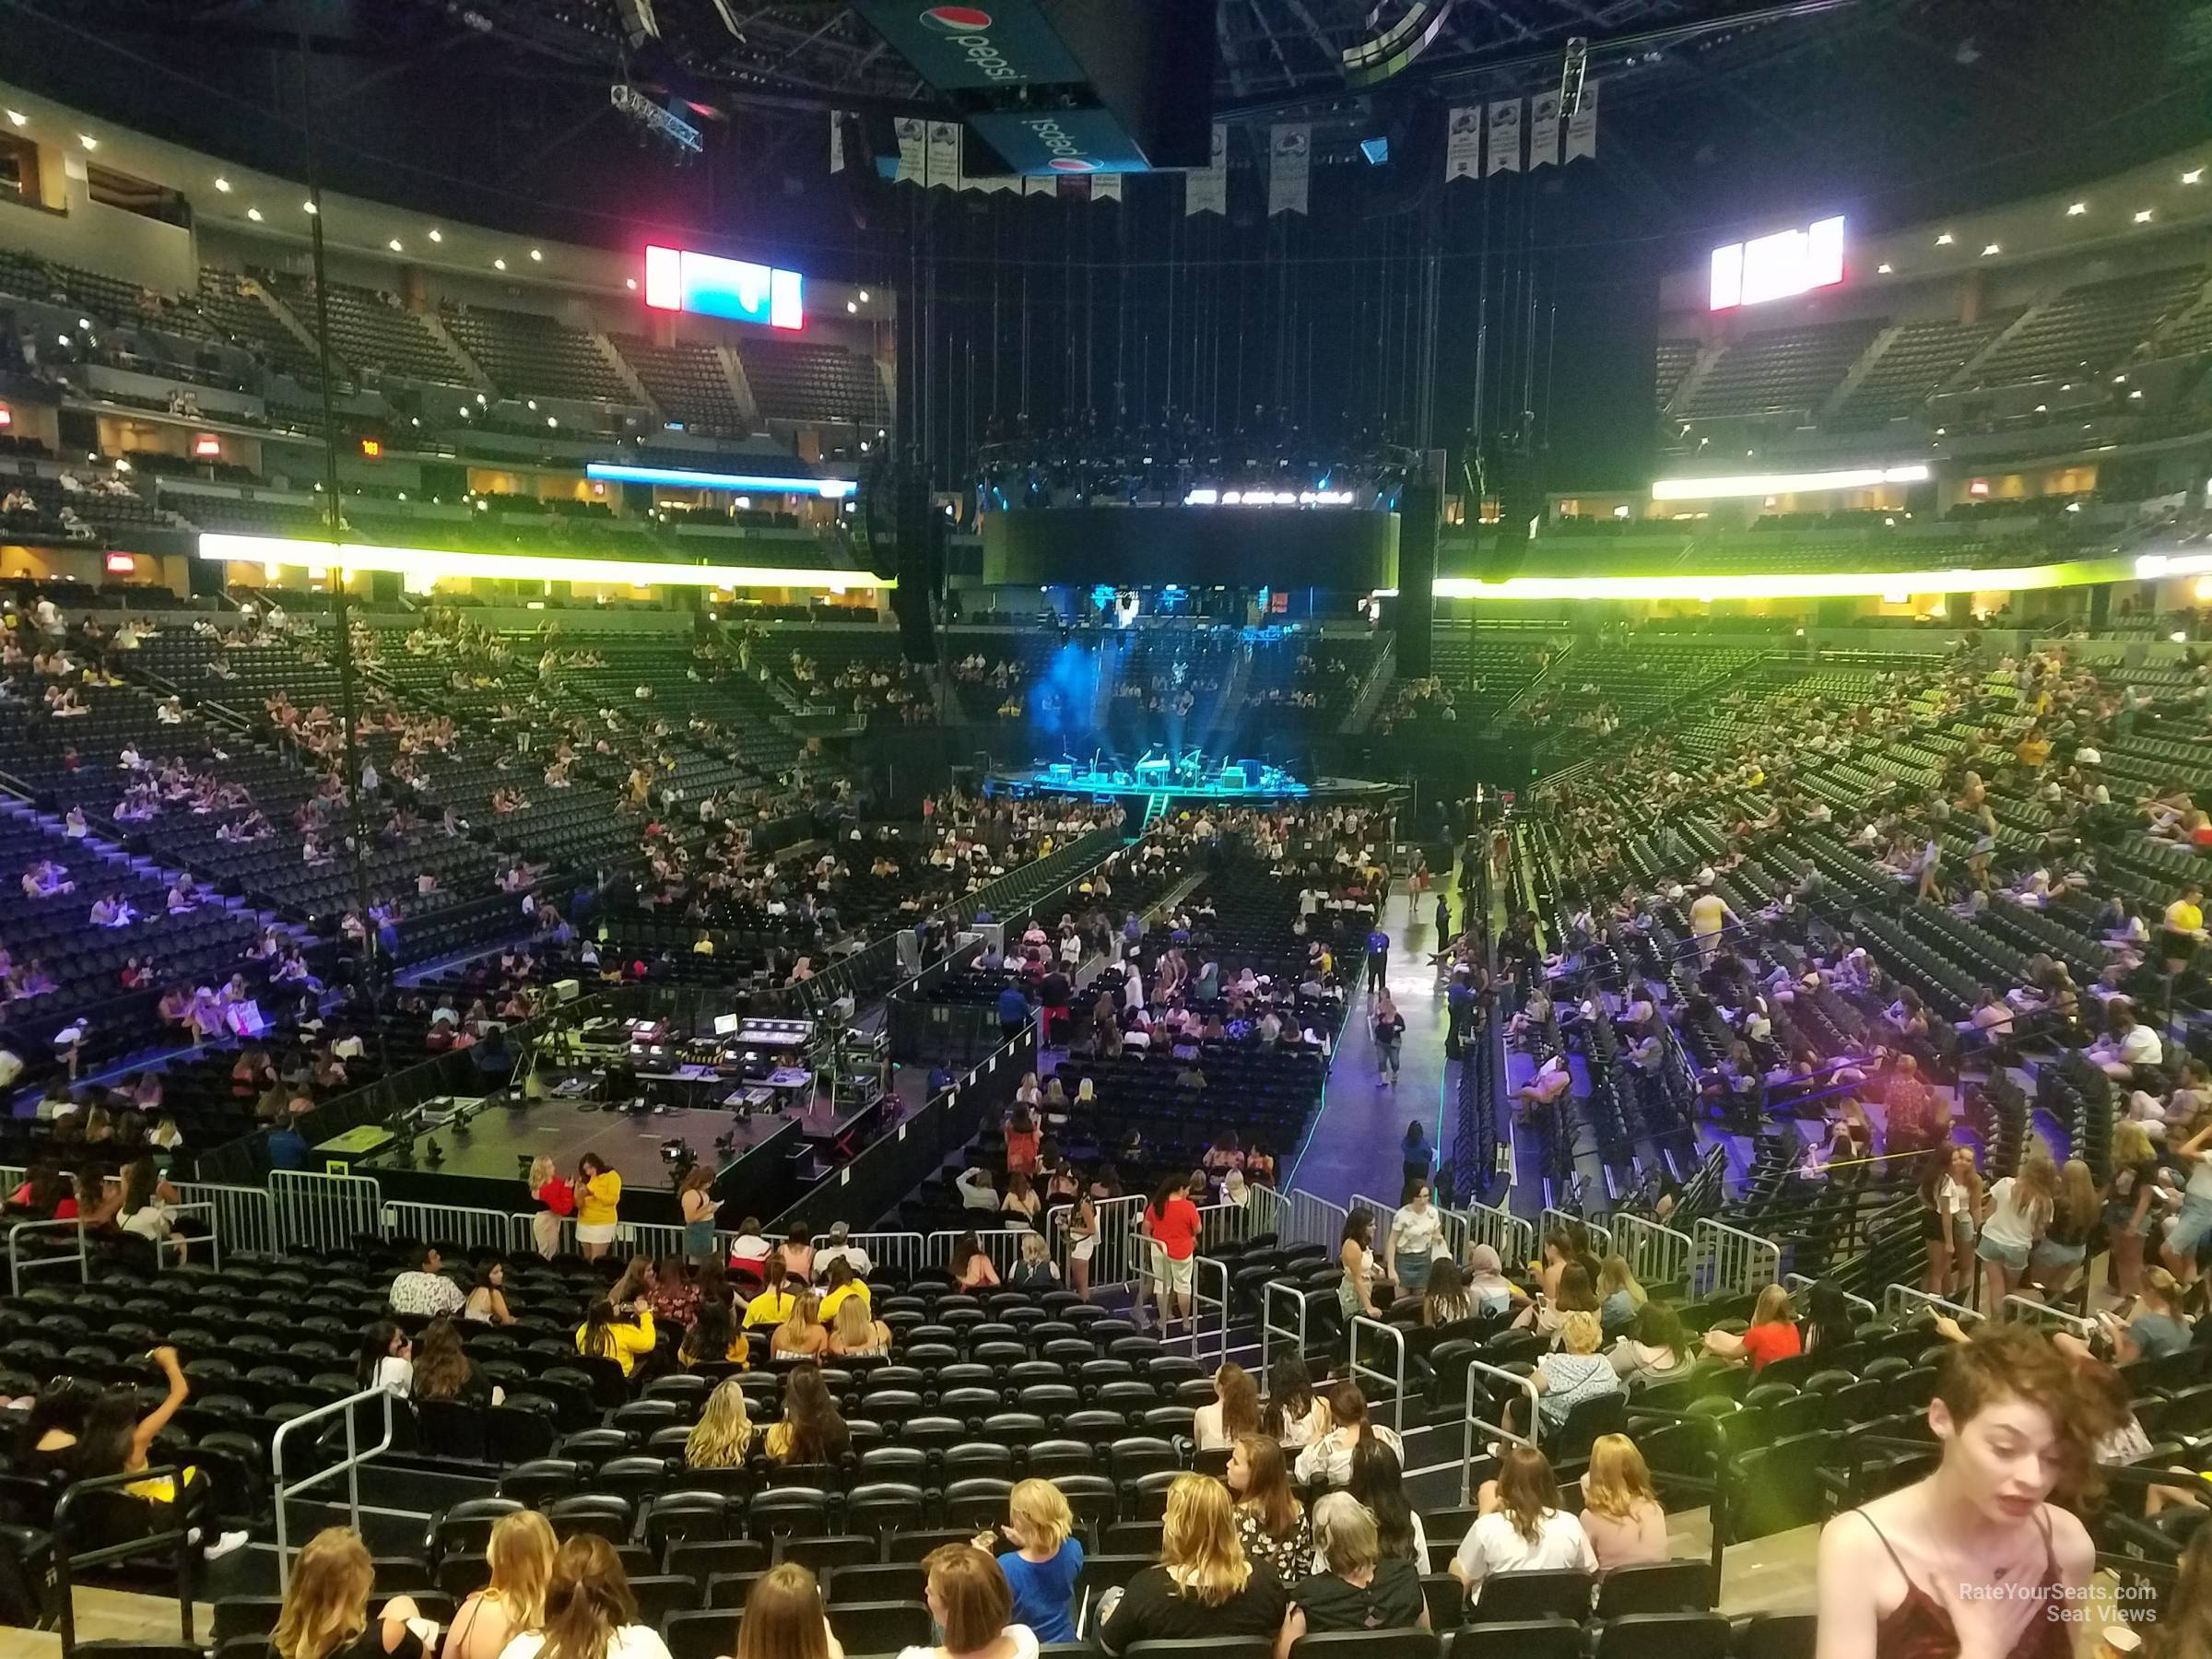 Pepsi Center: Pepsi Center Section 110 Concert Seating